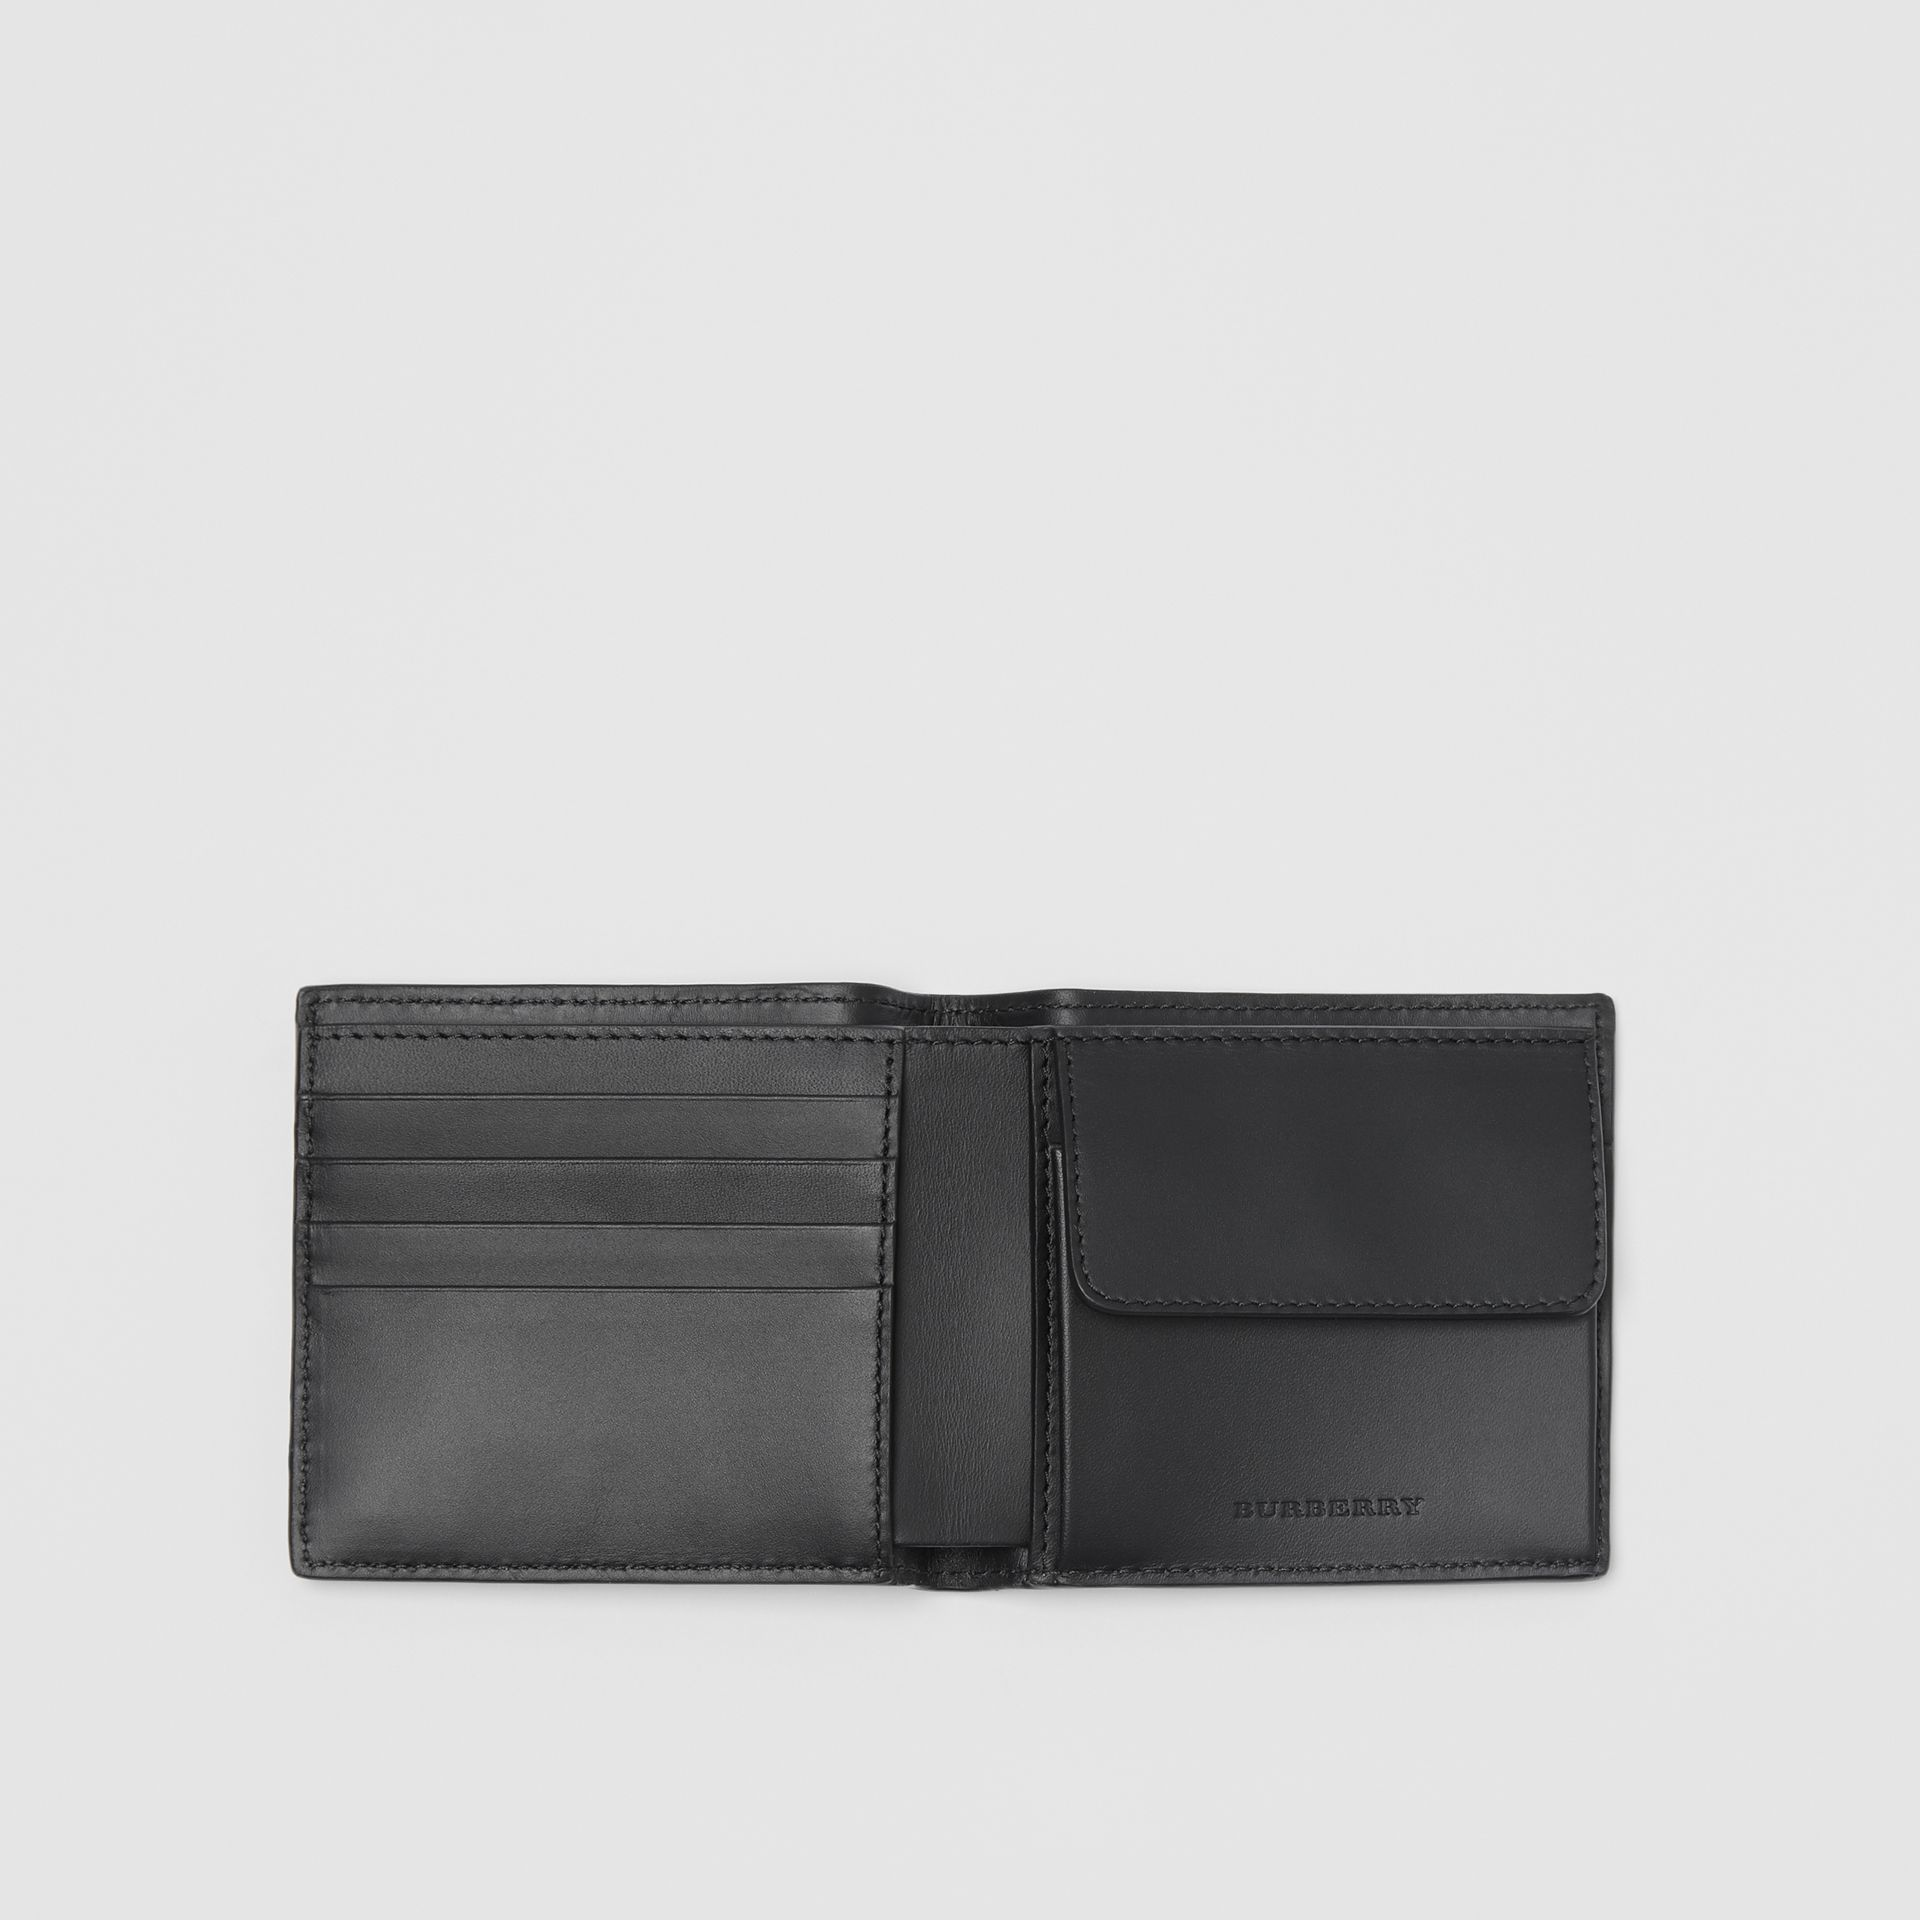 London Leather International Bifold Coin Wallet in Black - Men | Burberry - gallery image 3